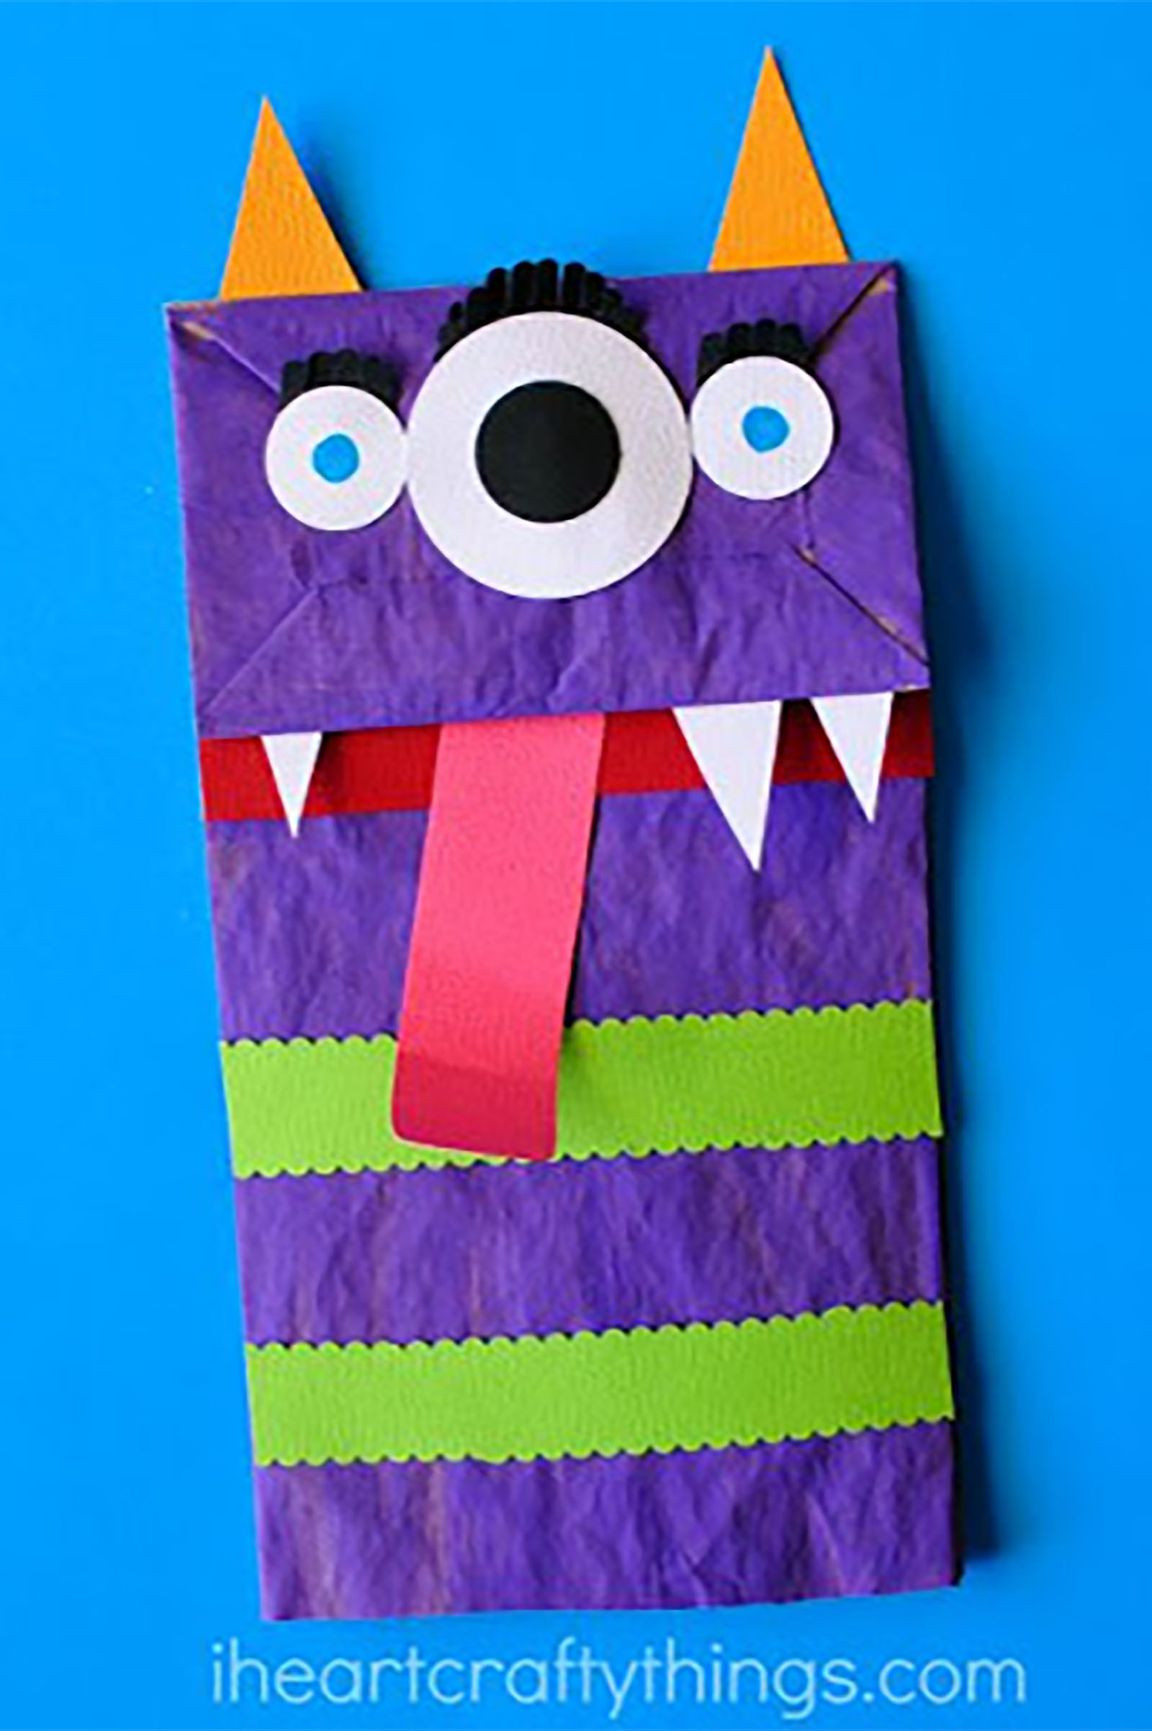 Best ideas about Crafting Ideas For Kids . Save or Pin Summertime Crafts For Kids Prt 2 – kelleysdiy Now.